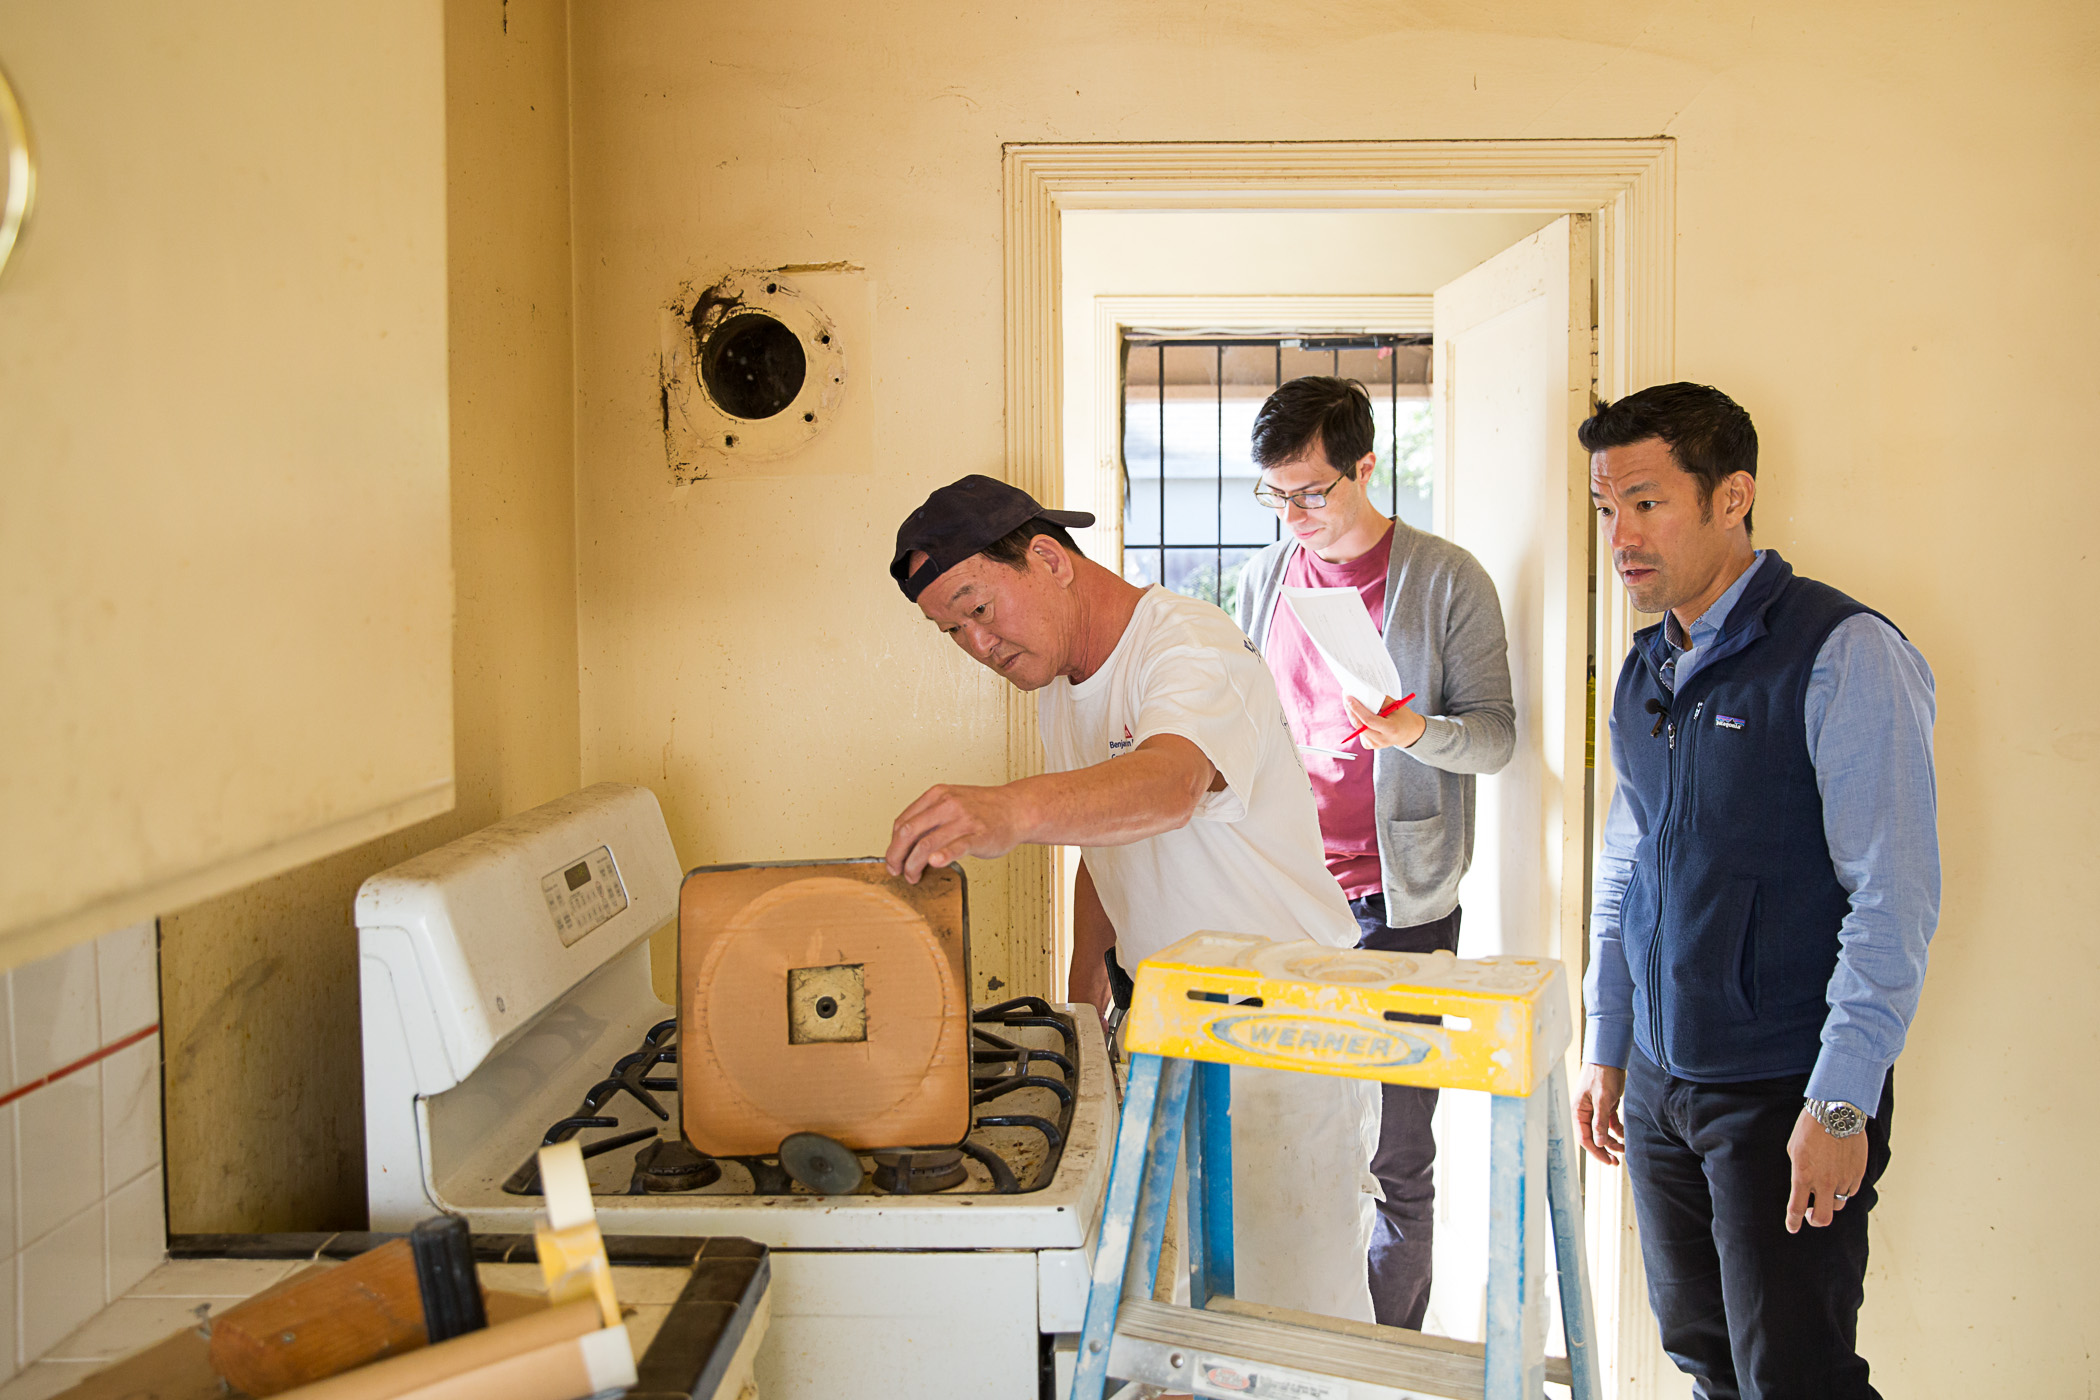 Kris and I go over kitchen repairs with the handyman.